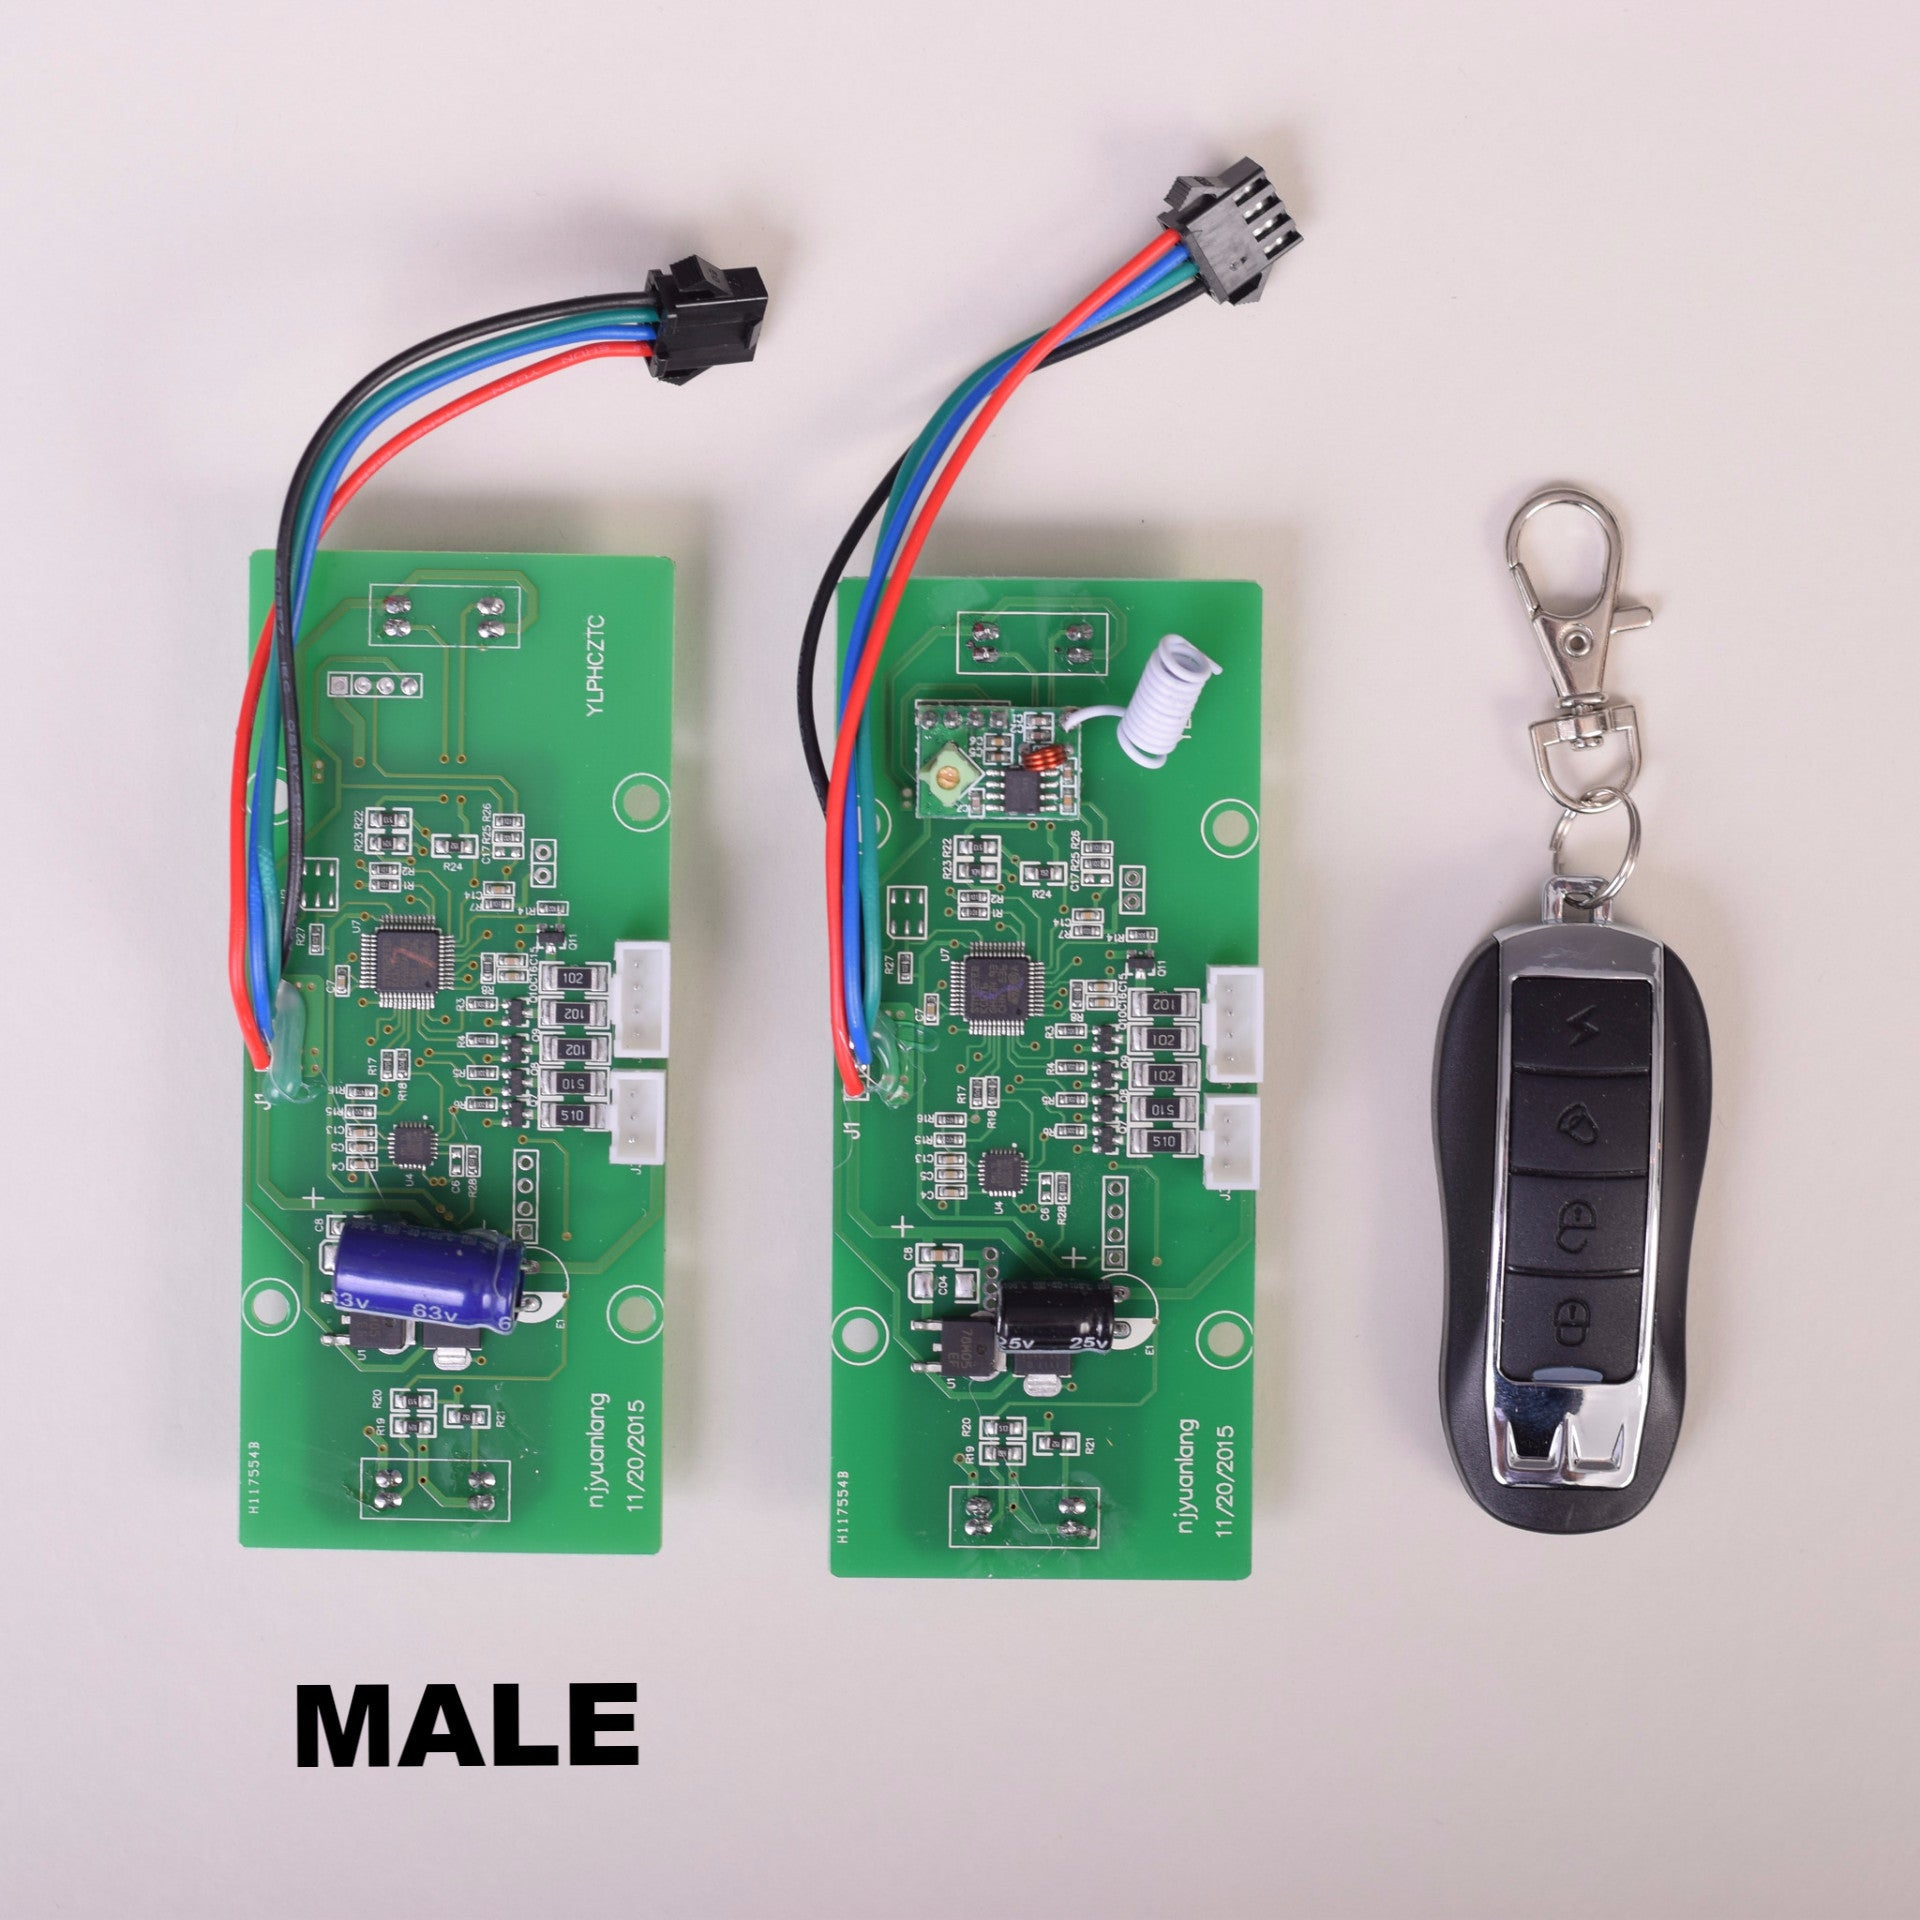 Parts For 10 Hoverboards Hoverboard Repair 2 Wheel Self Balancing Scooter Part Pcb Circuit Board Control Universal Balance Sensor Boards Gyroscopes With Remote